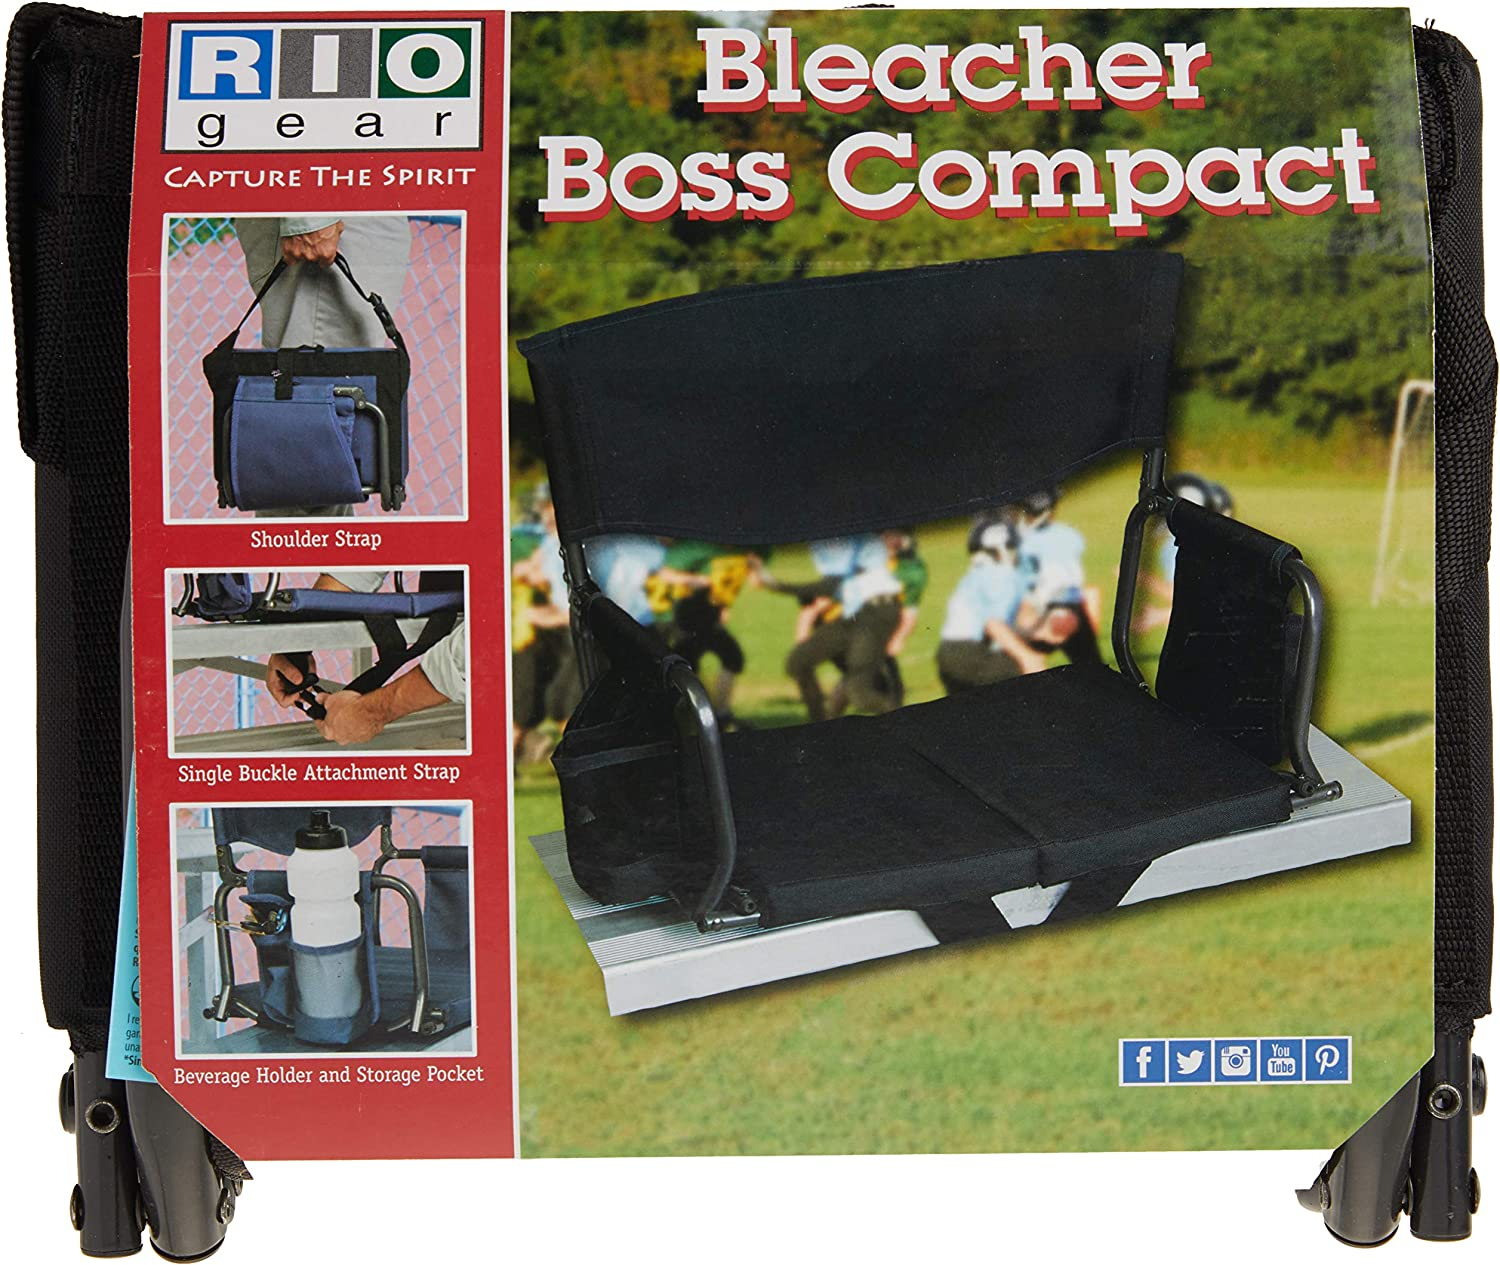 Rio Adventure Full Size Stadium Arm Chair Seat With Beverage Holder Carry Strap for sale online